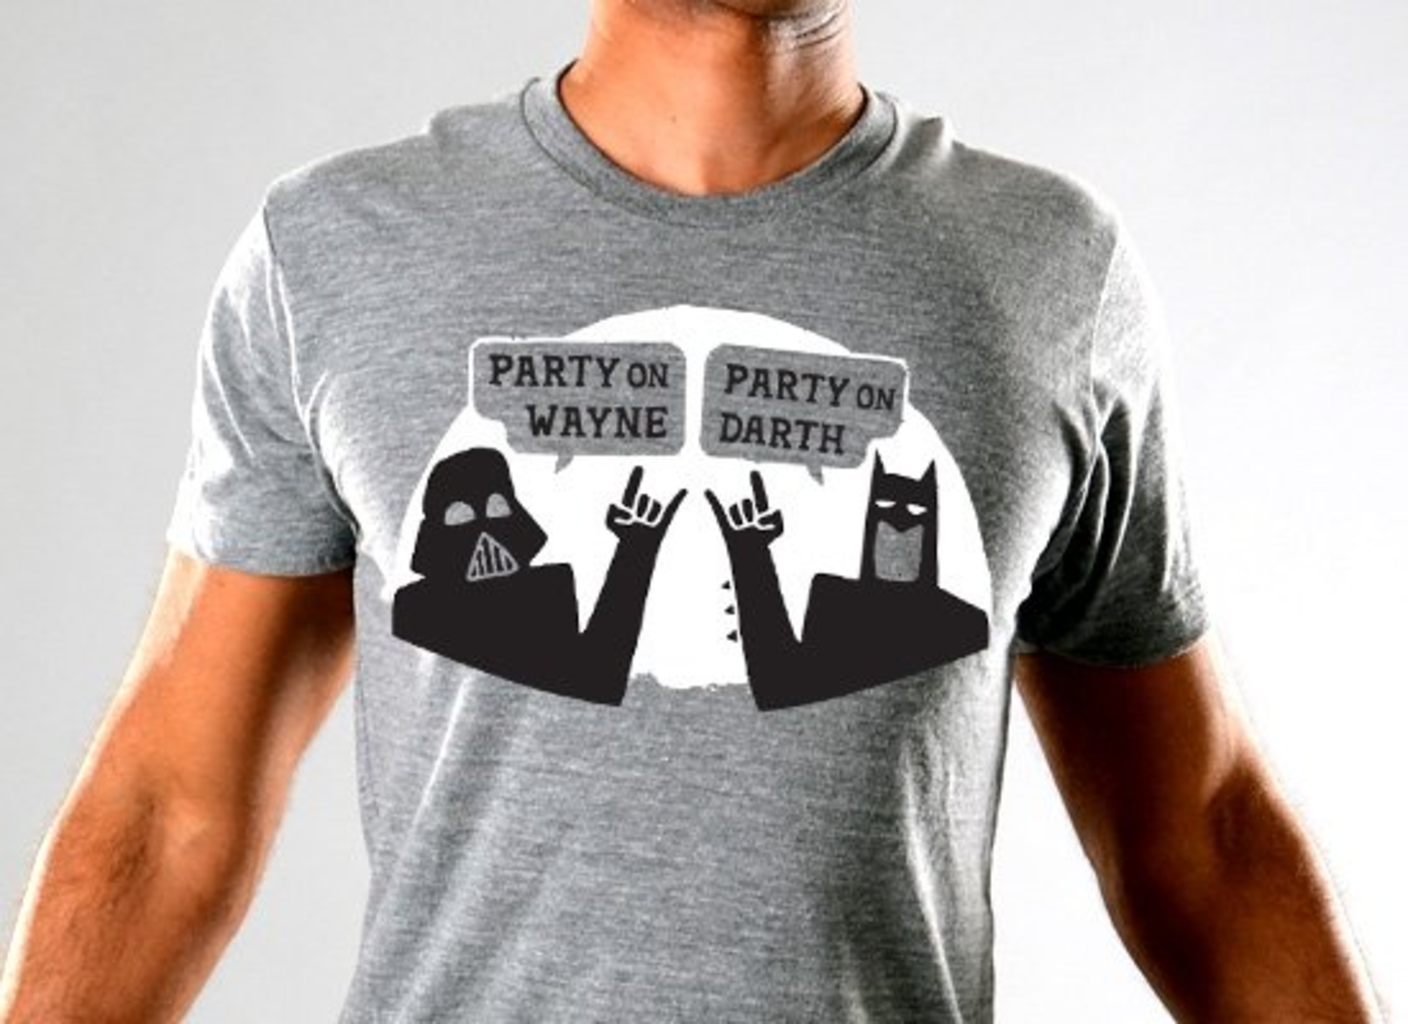 SnorgTees: Party On Wayne, Party On Darth Limited Edition Tri-Blend